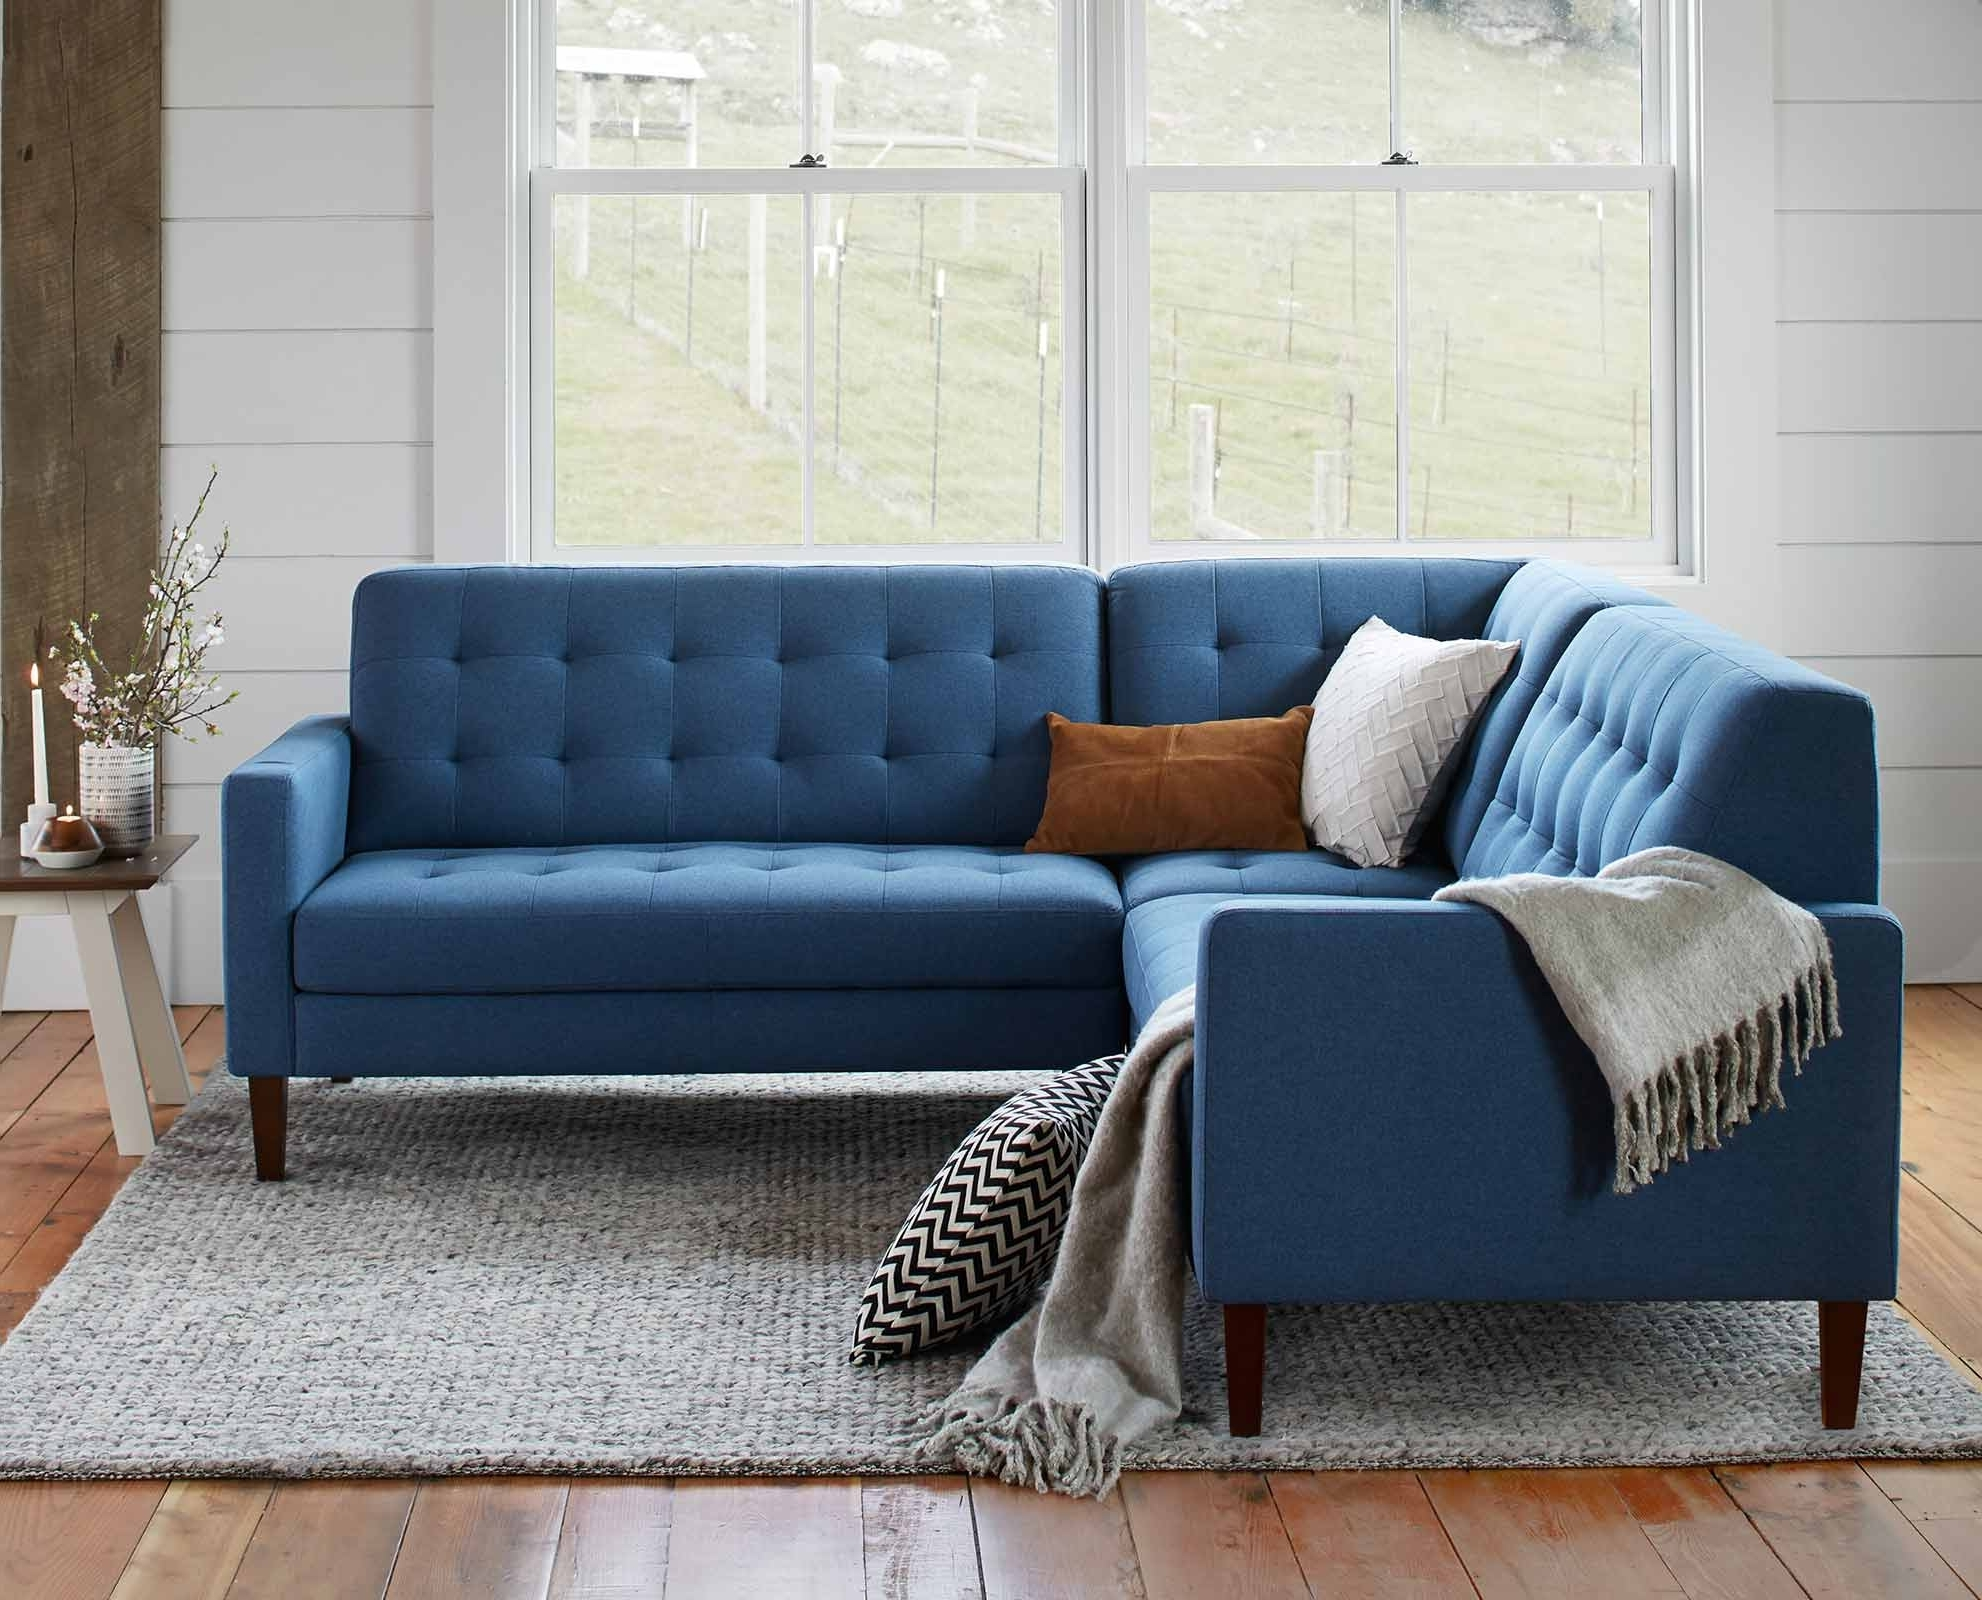 Dania Sectional Sofas Throughout Well Known The Camilla Sectional From Scandinavian Designs – Adopt A Adopt A (Gallery 2 of 20)